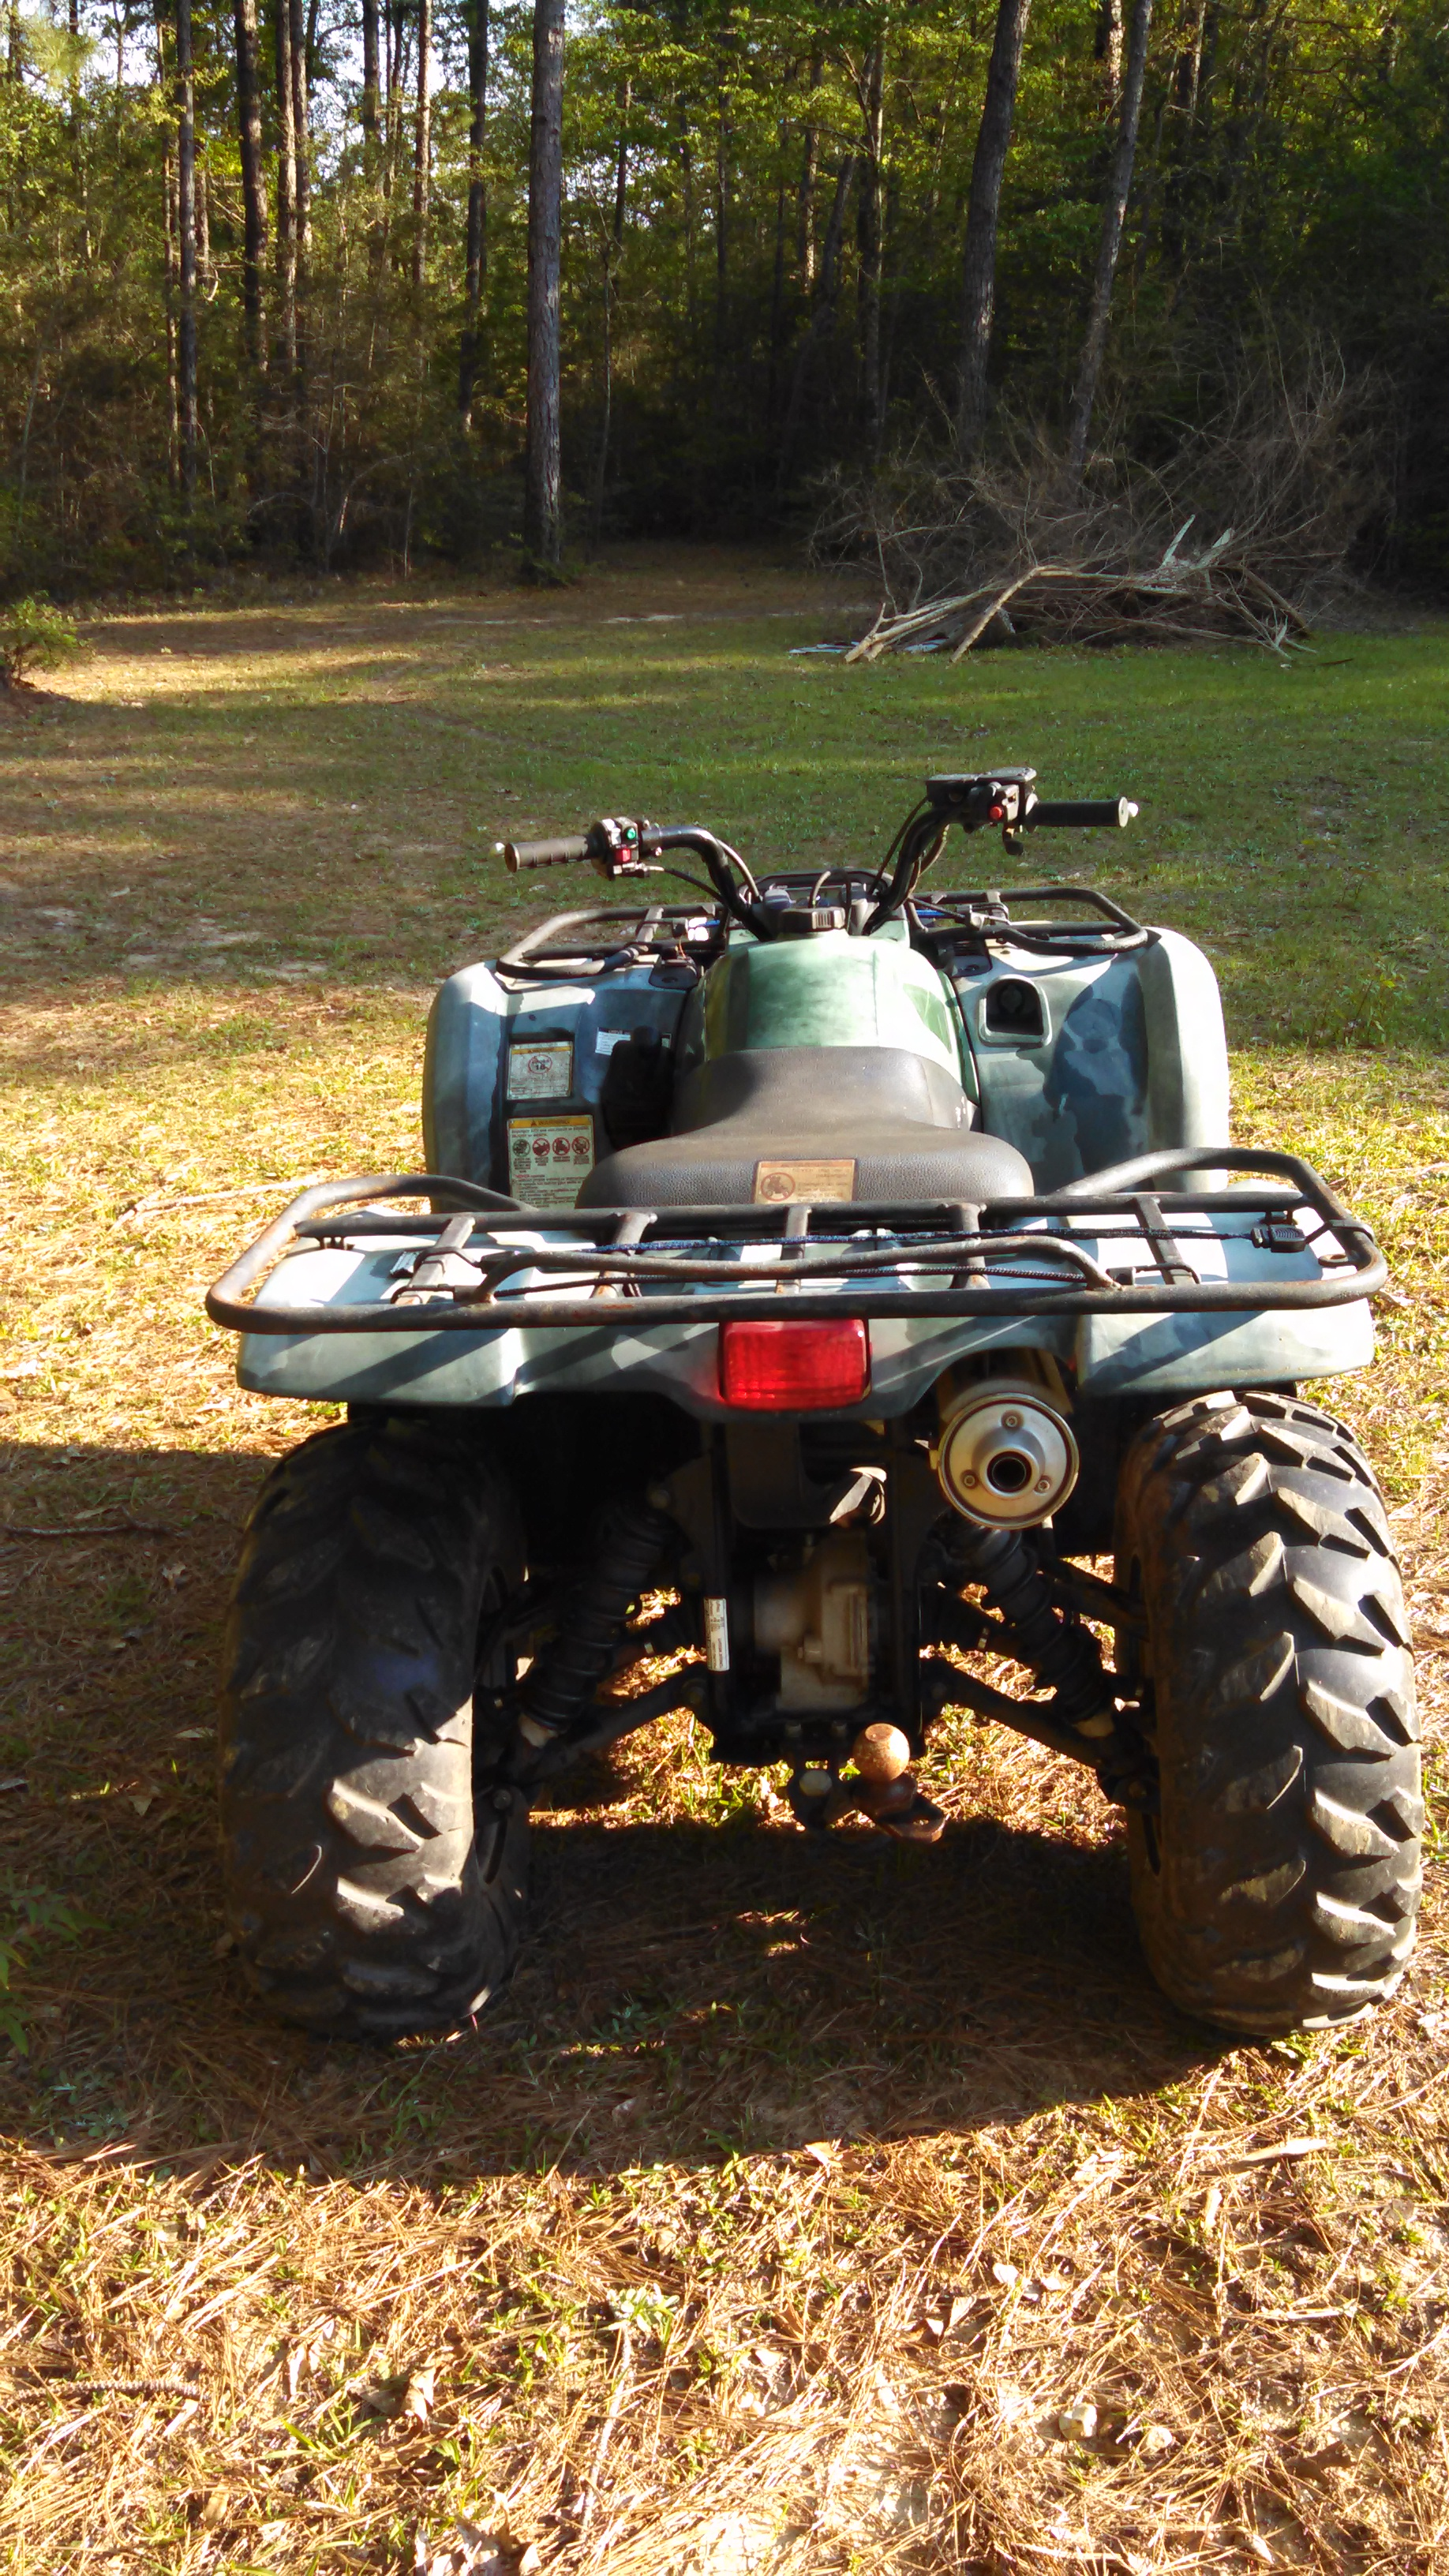 For sale 2007 yamaha grizzly 450 low miles and hours for Yamaha grizzly 450 for sale